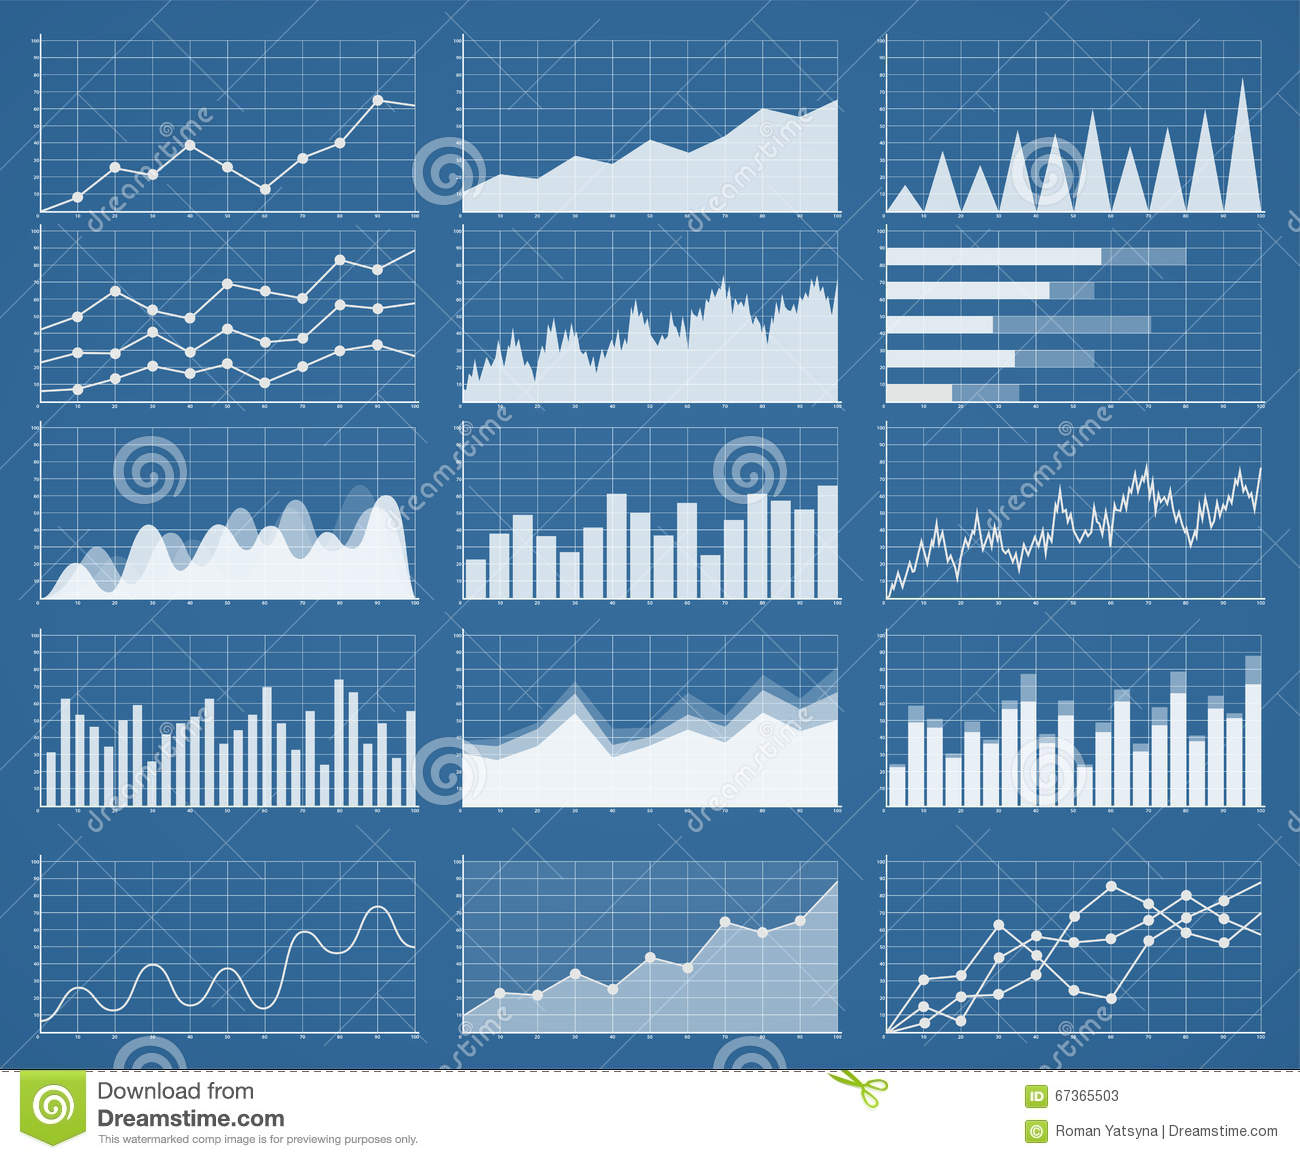 statistical analysis graphs and diagrams john deere 40 wiring diagram business charts set management of